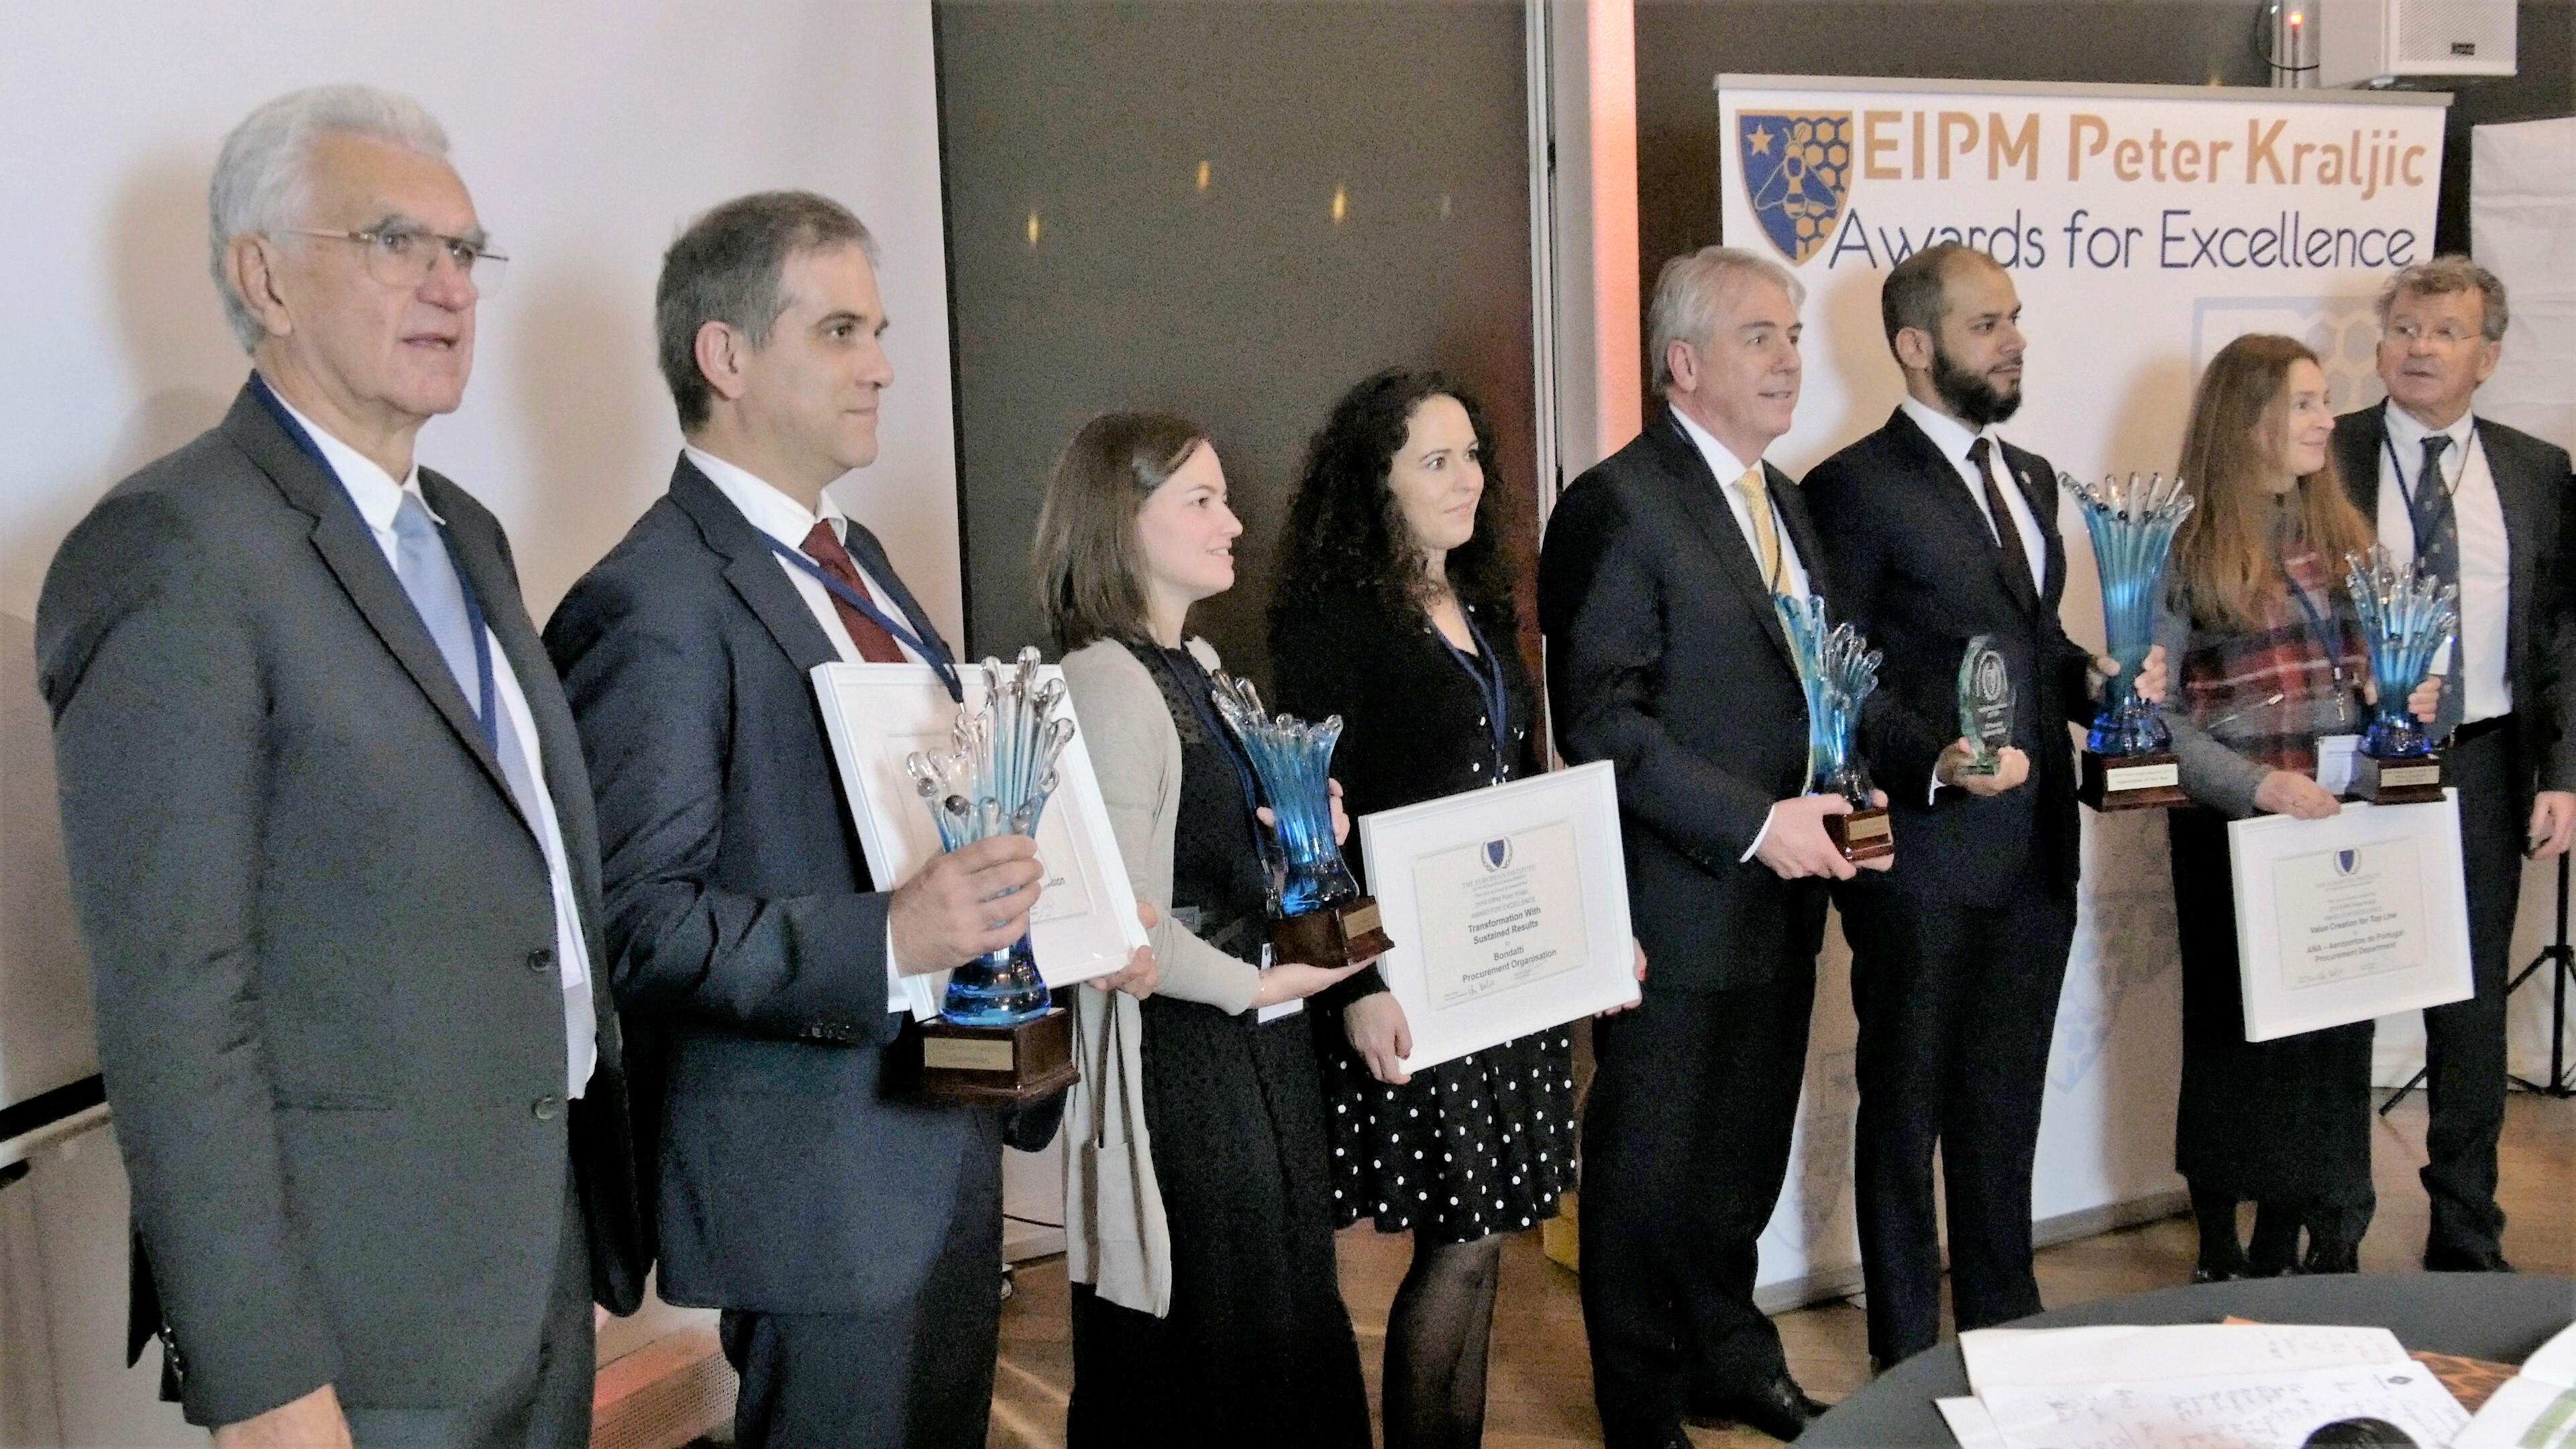 Award Winners of the 2019 EIPM-Peter Kraljic Awards